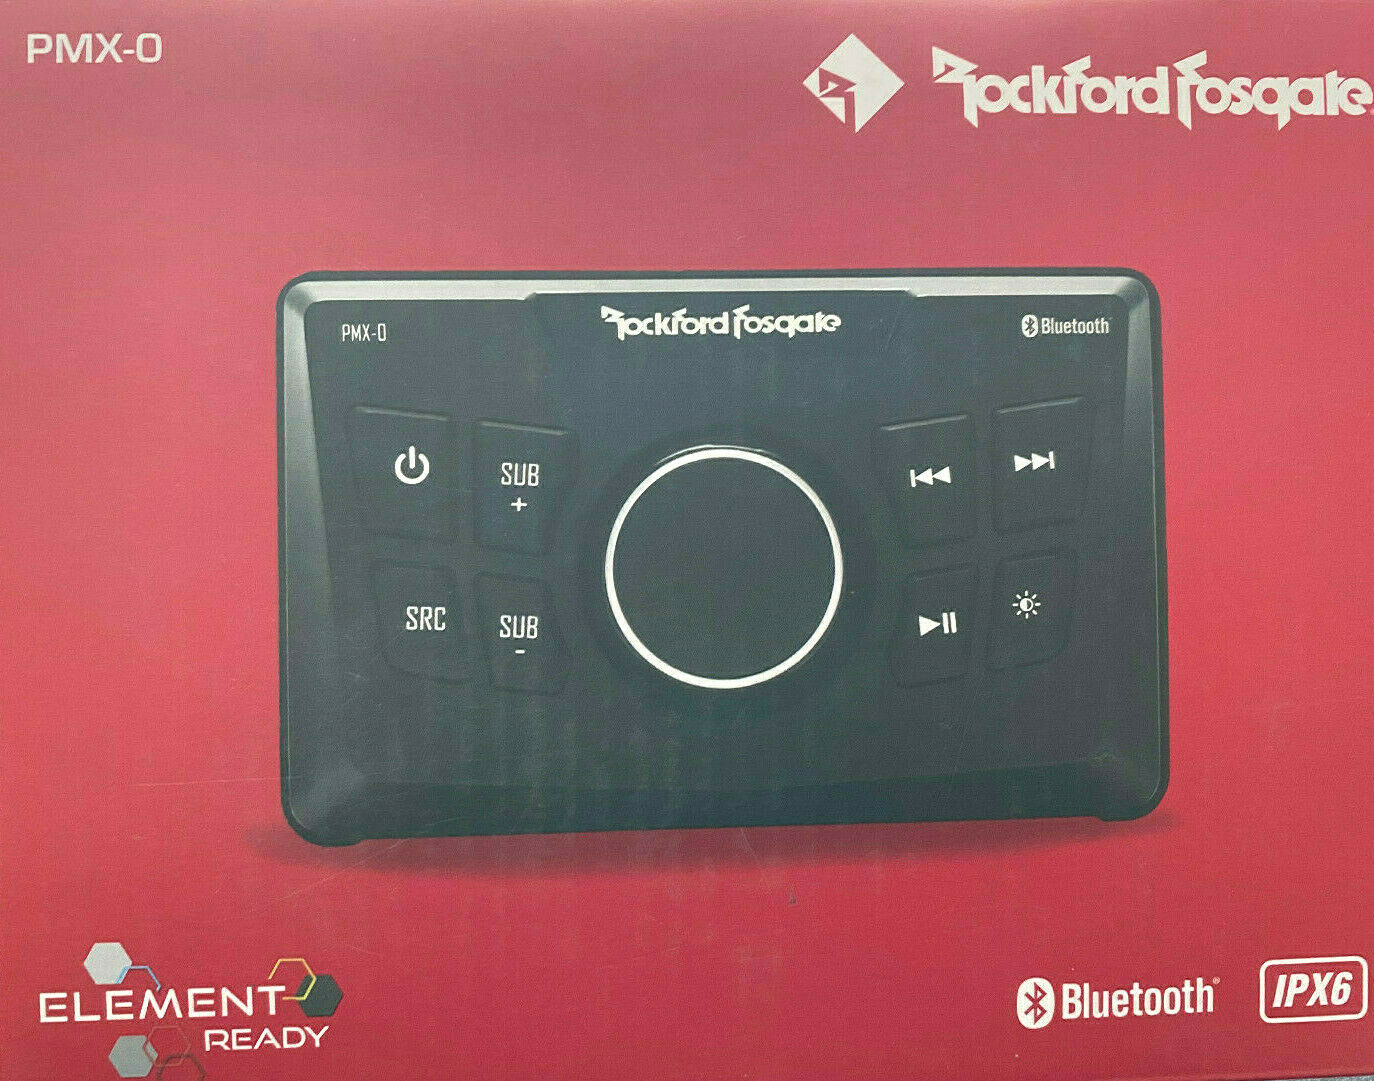 Rockford Fosgate PMX-0 Digital Media Bluetooth USB Receiver